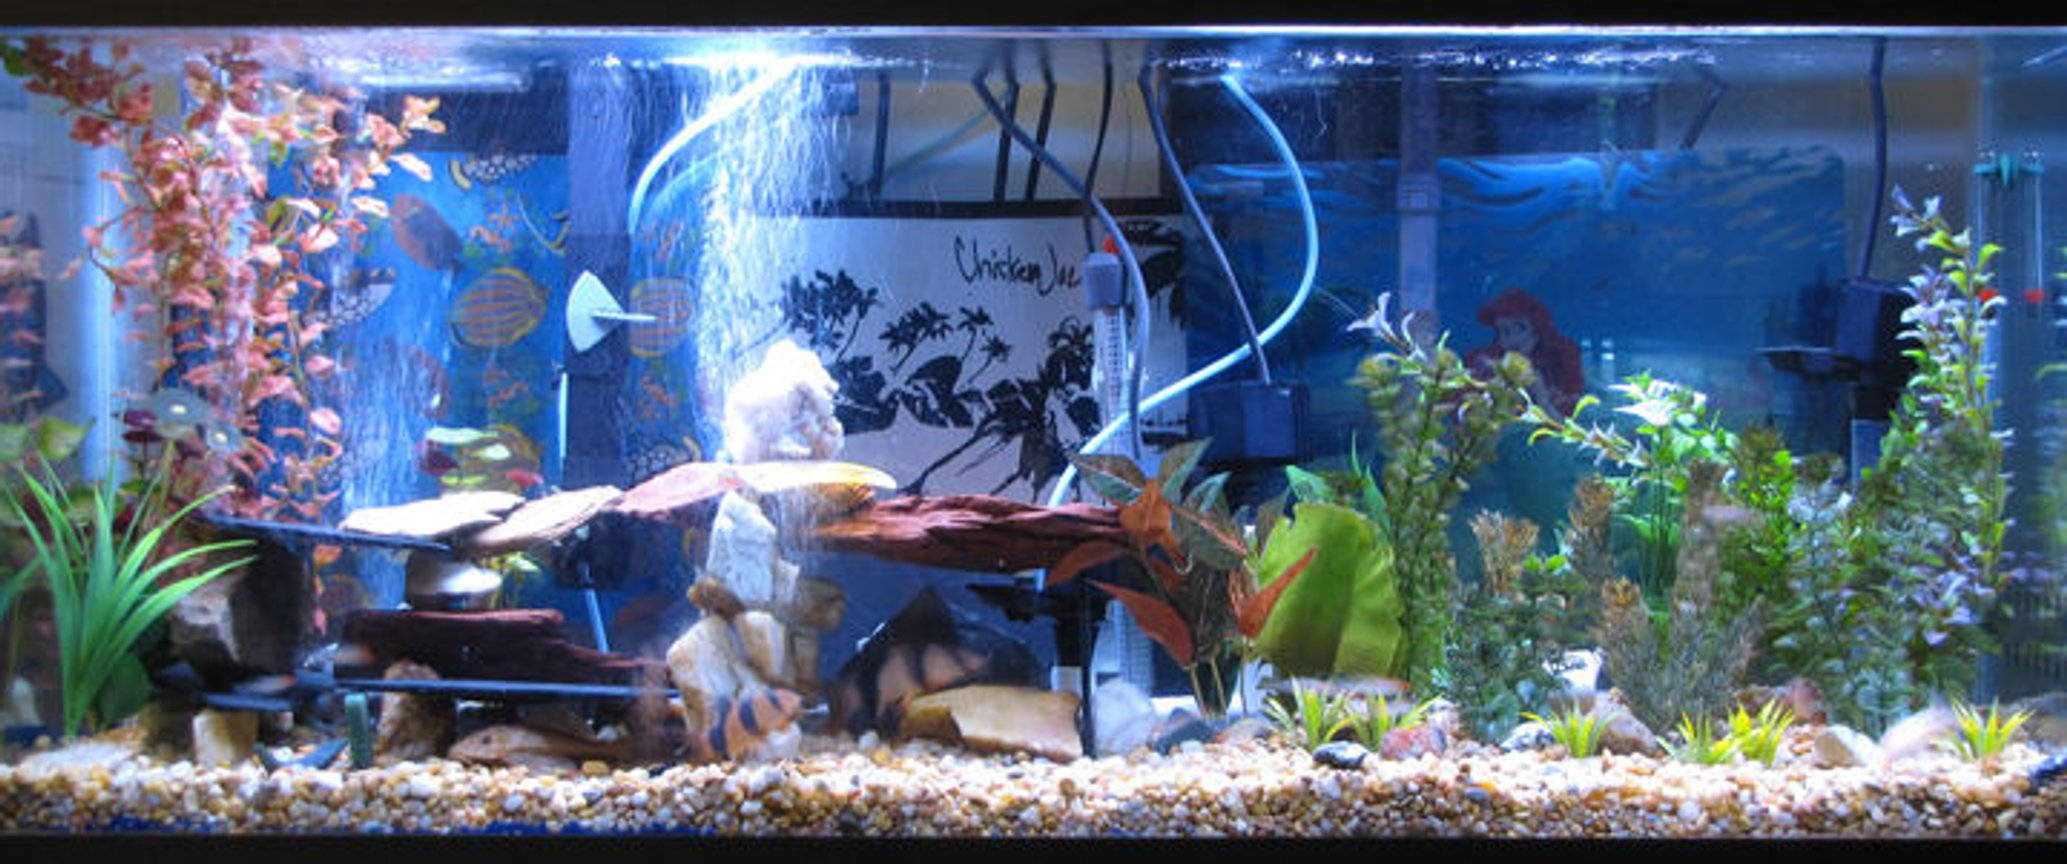 55 gallons freshwater fish tank (mostly fish and non-living decorations) - Here is my 55gal.